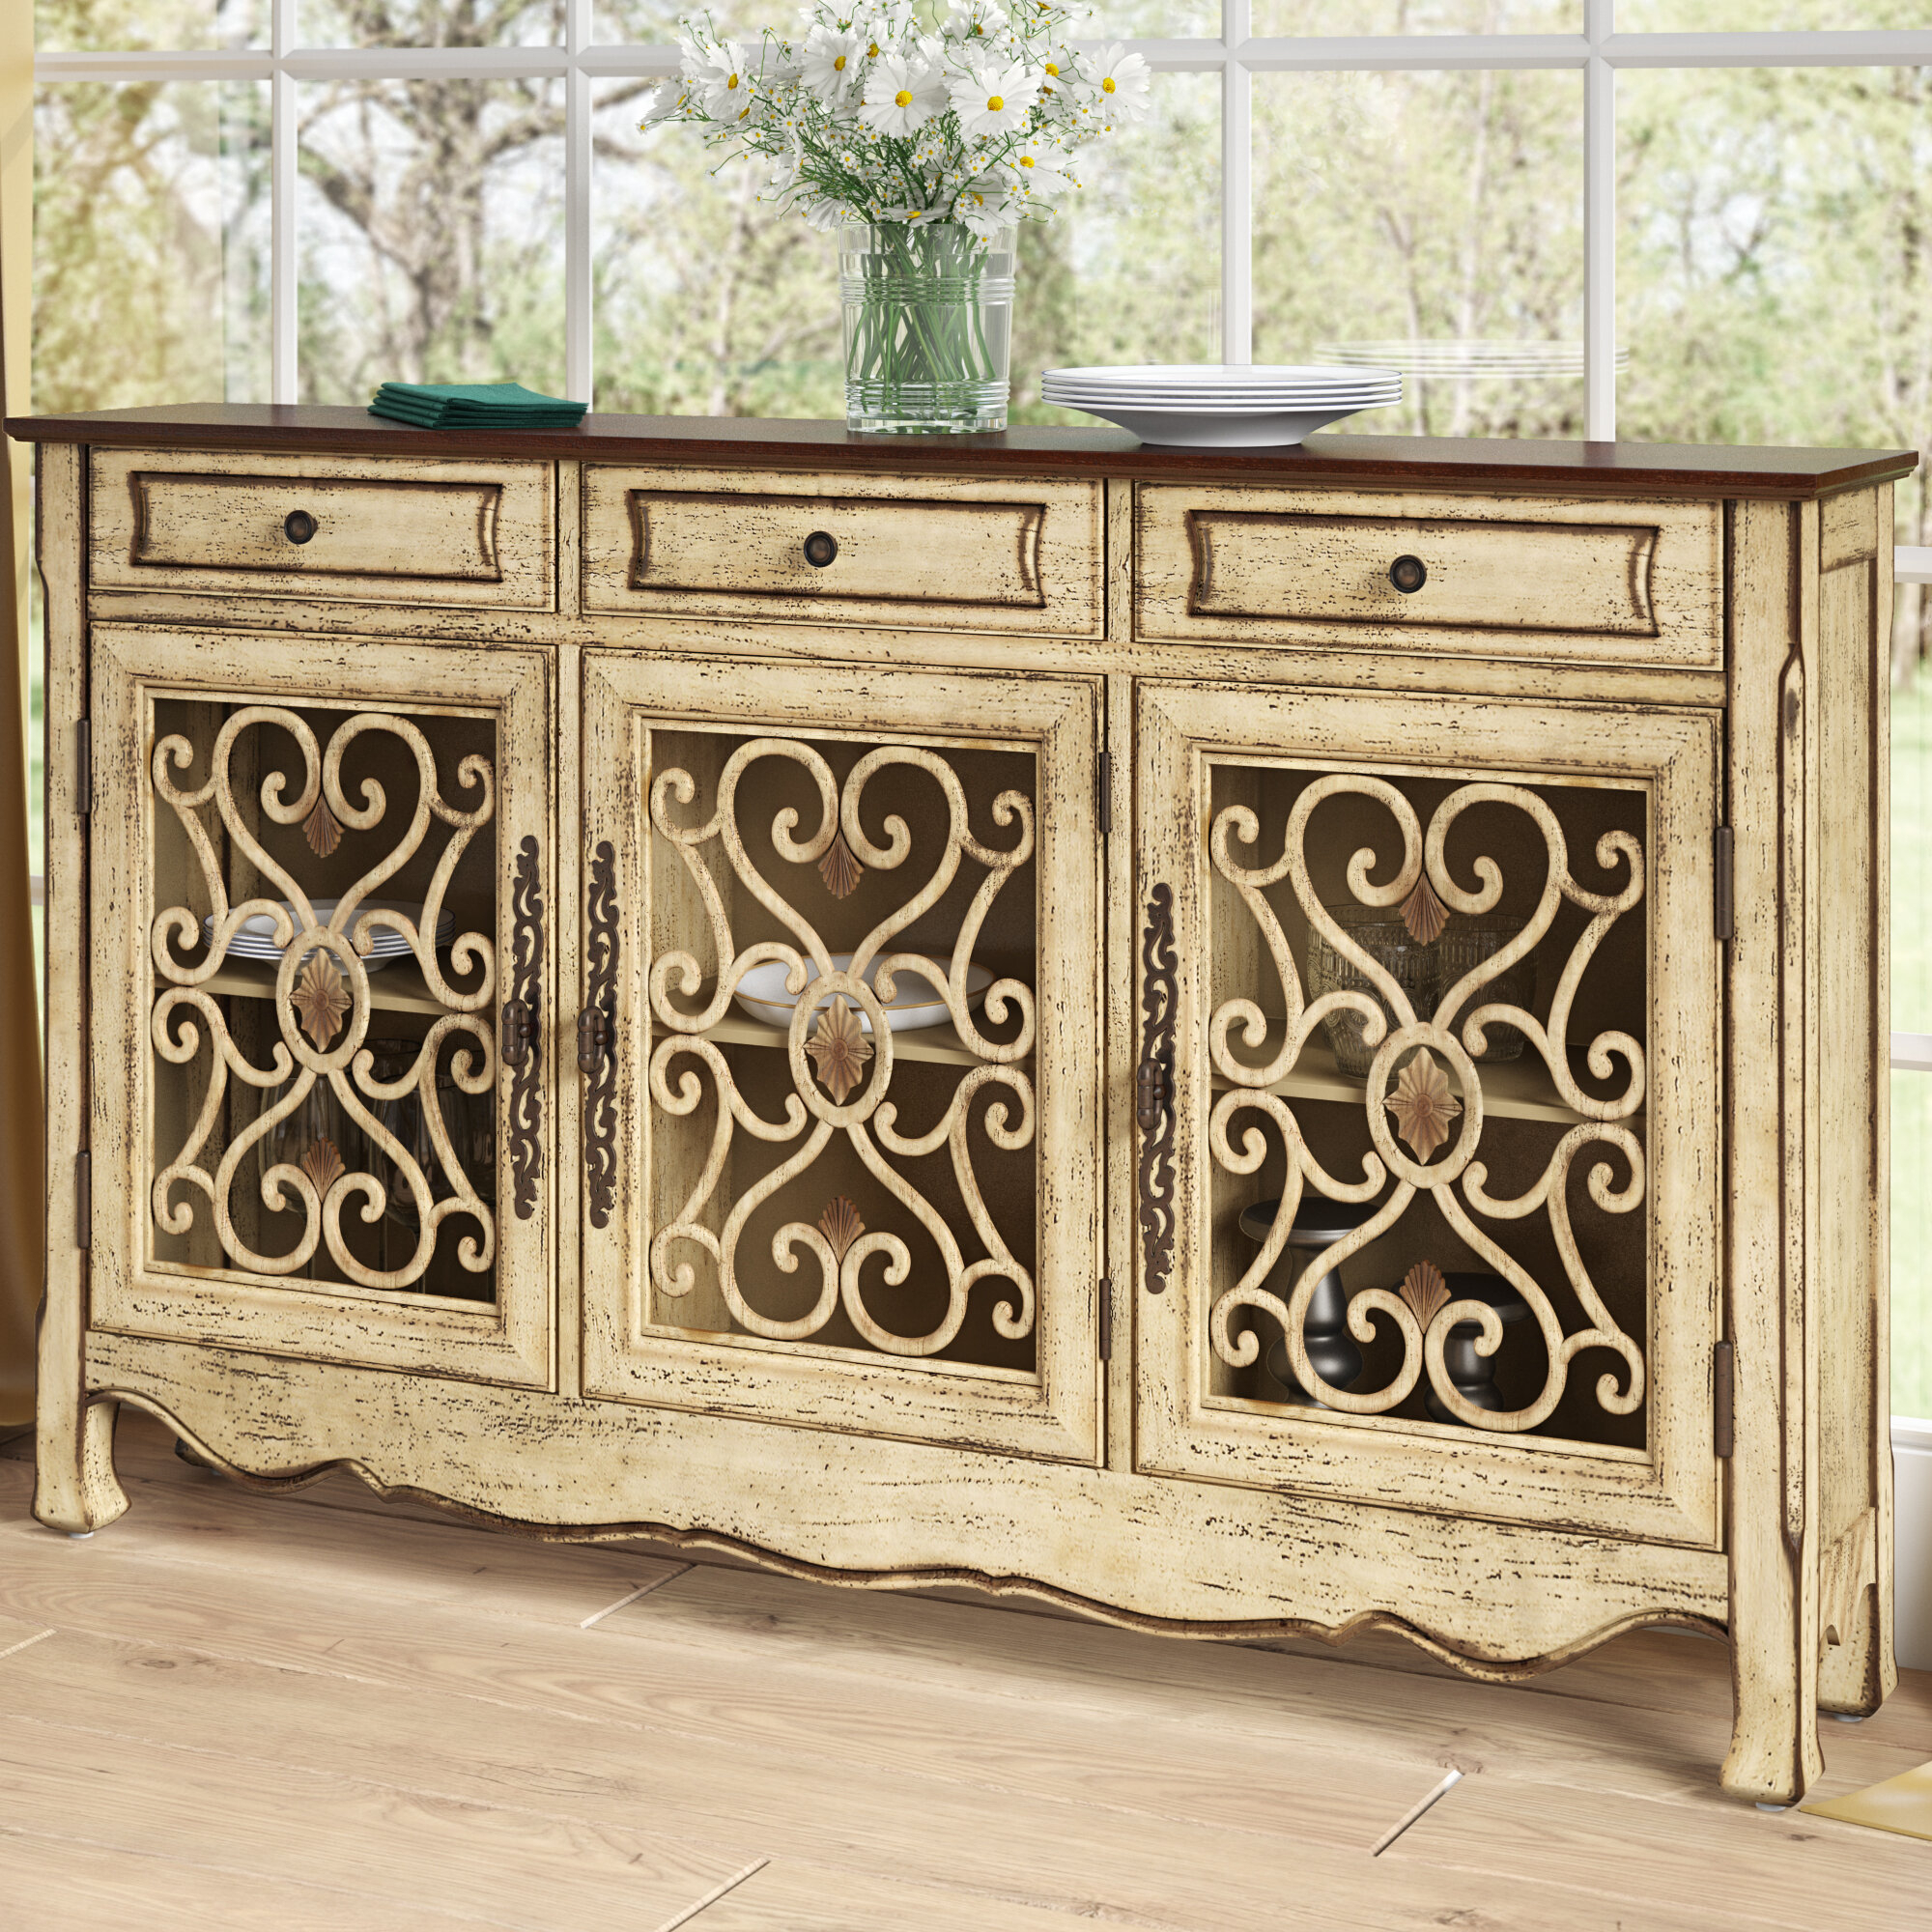 Antique Green Sideboard | Wayfair with regard to Knoxville Sideboards (Image 5 of 30)